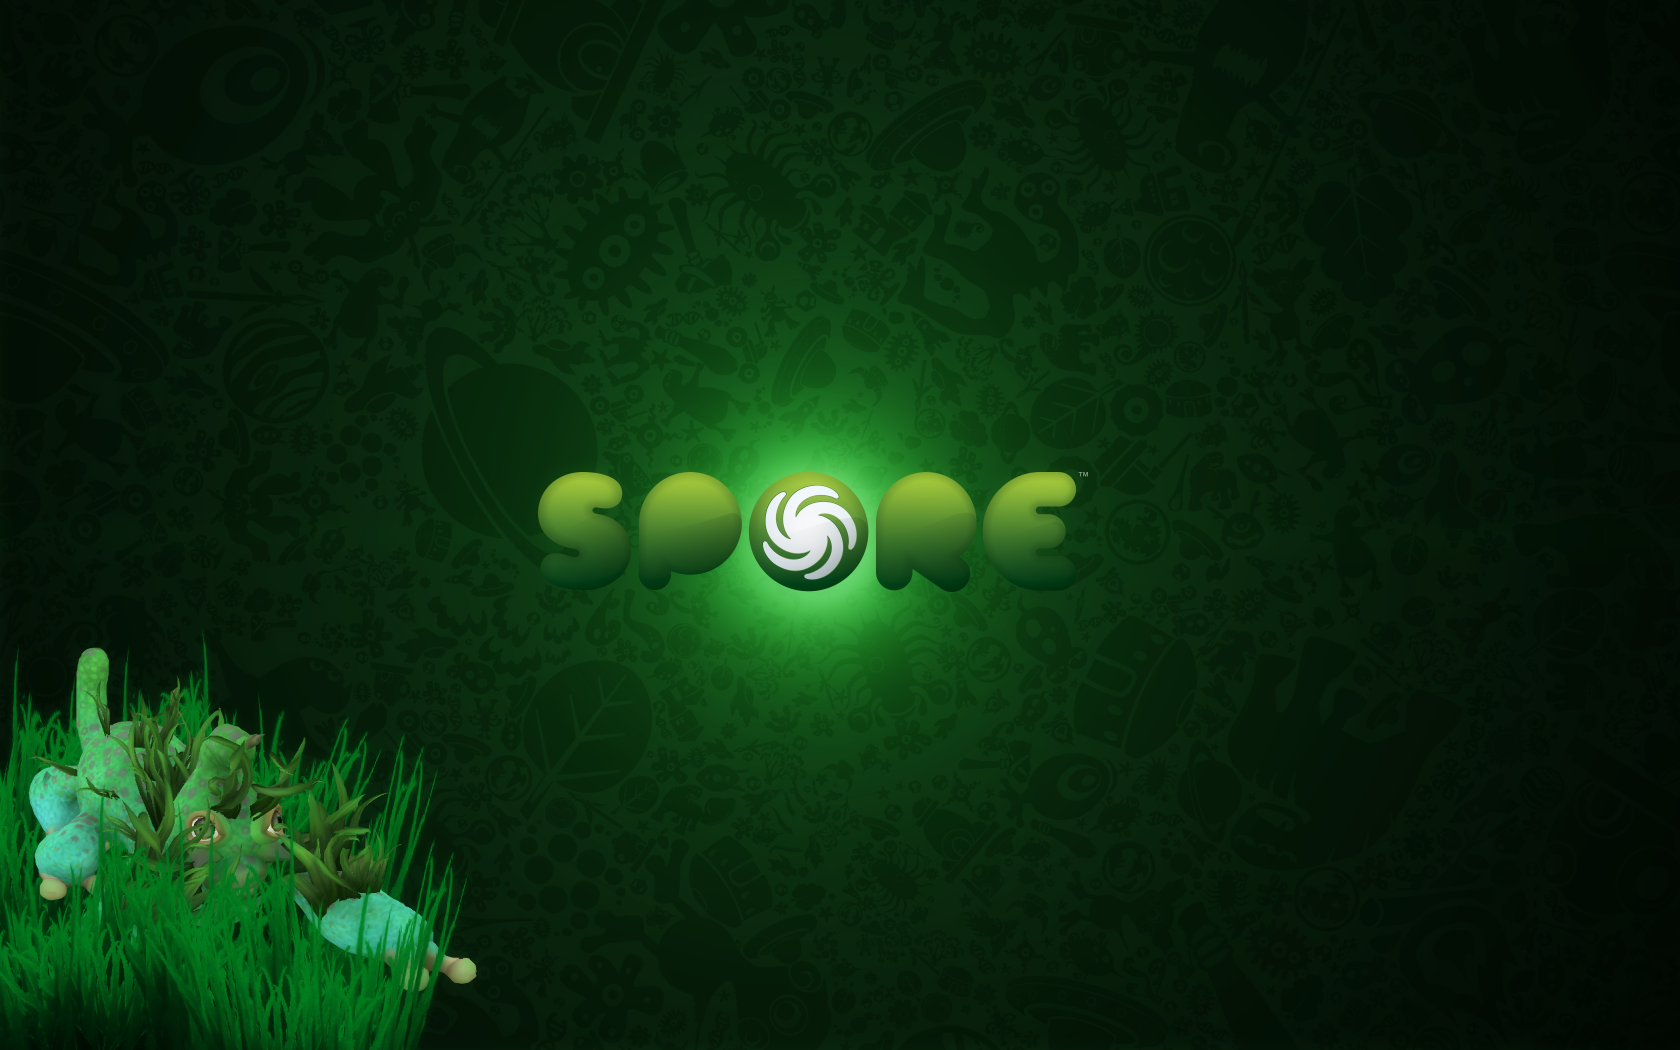 HQ RES Wallpapers of Spore